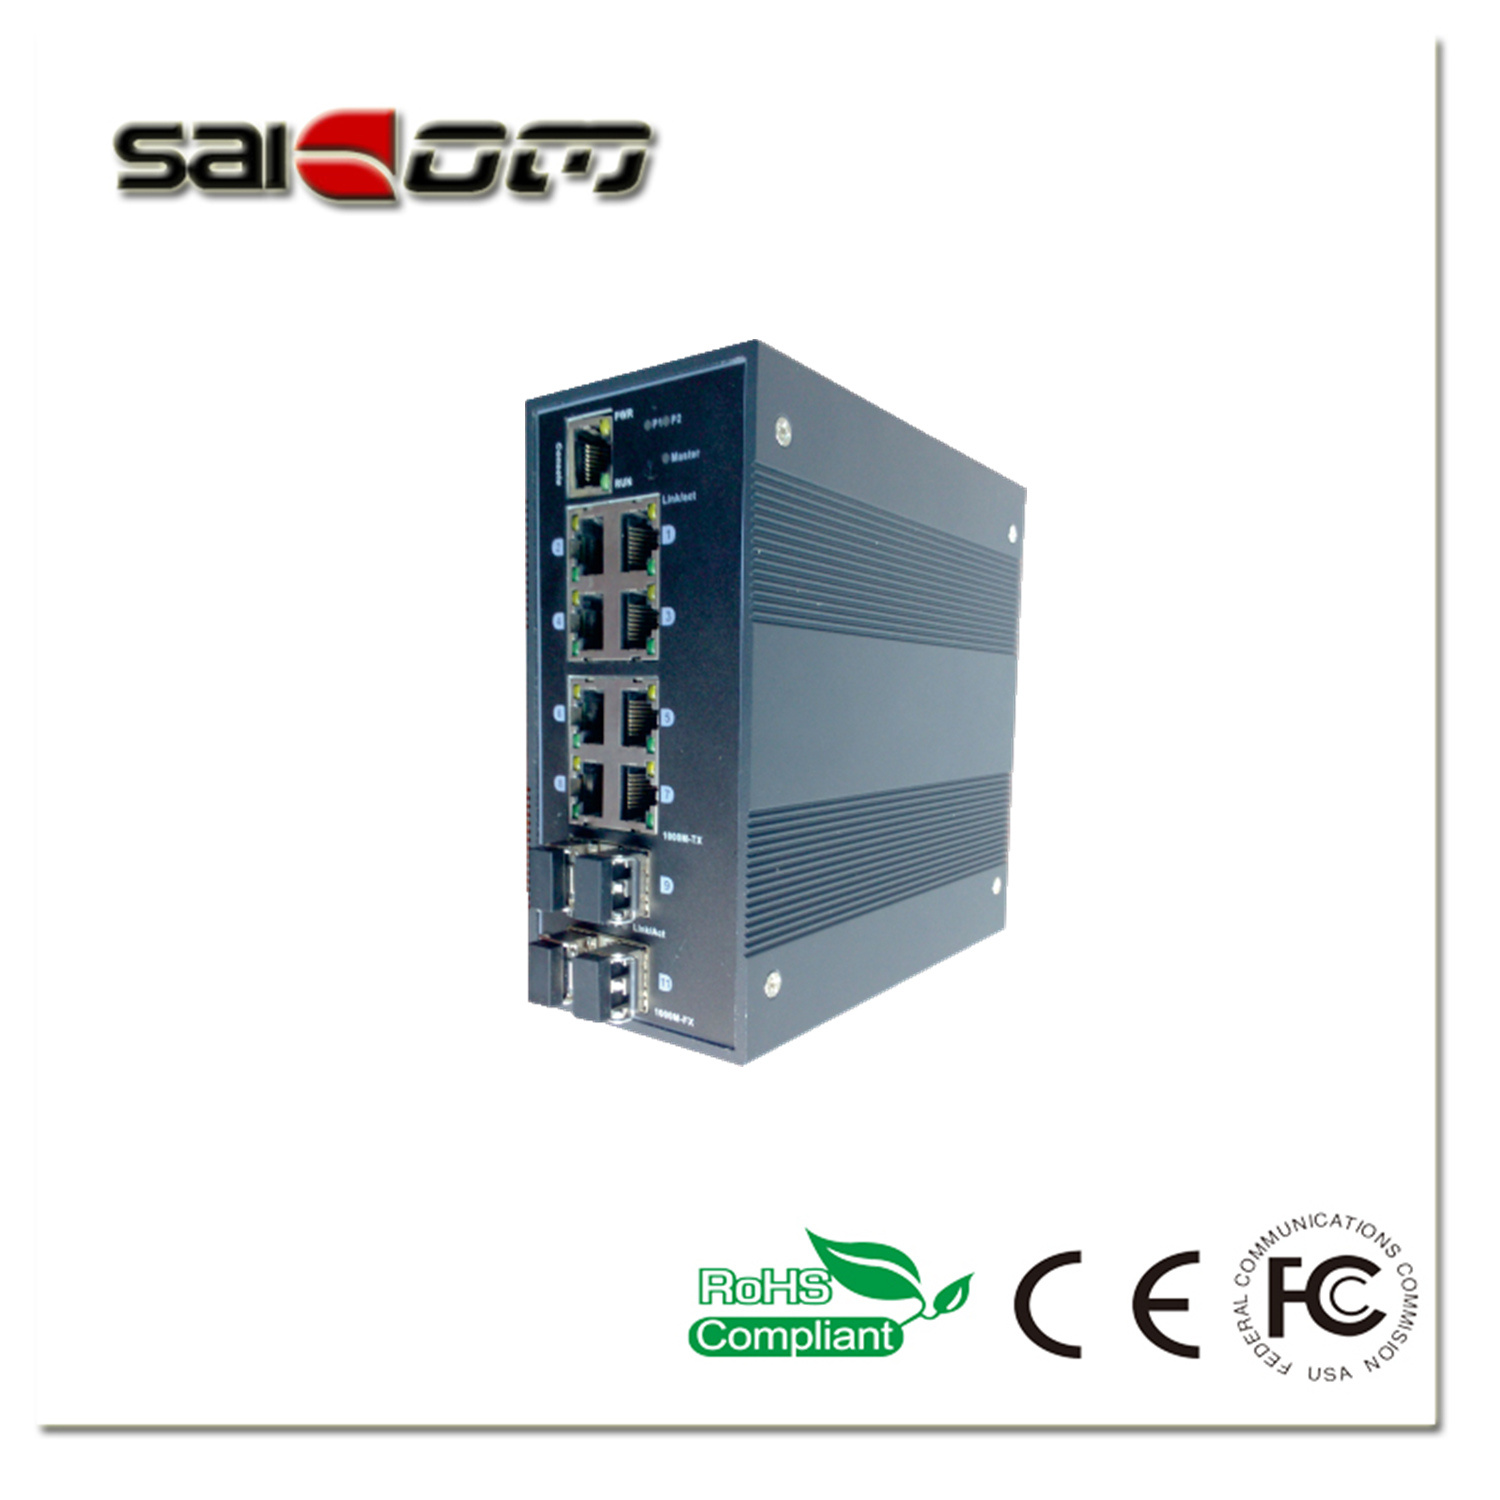 1000Mbps Intelligent/Smart 4GX/8GE Industrial Management Optical Network Switch